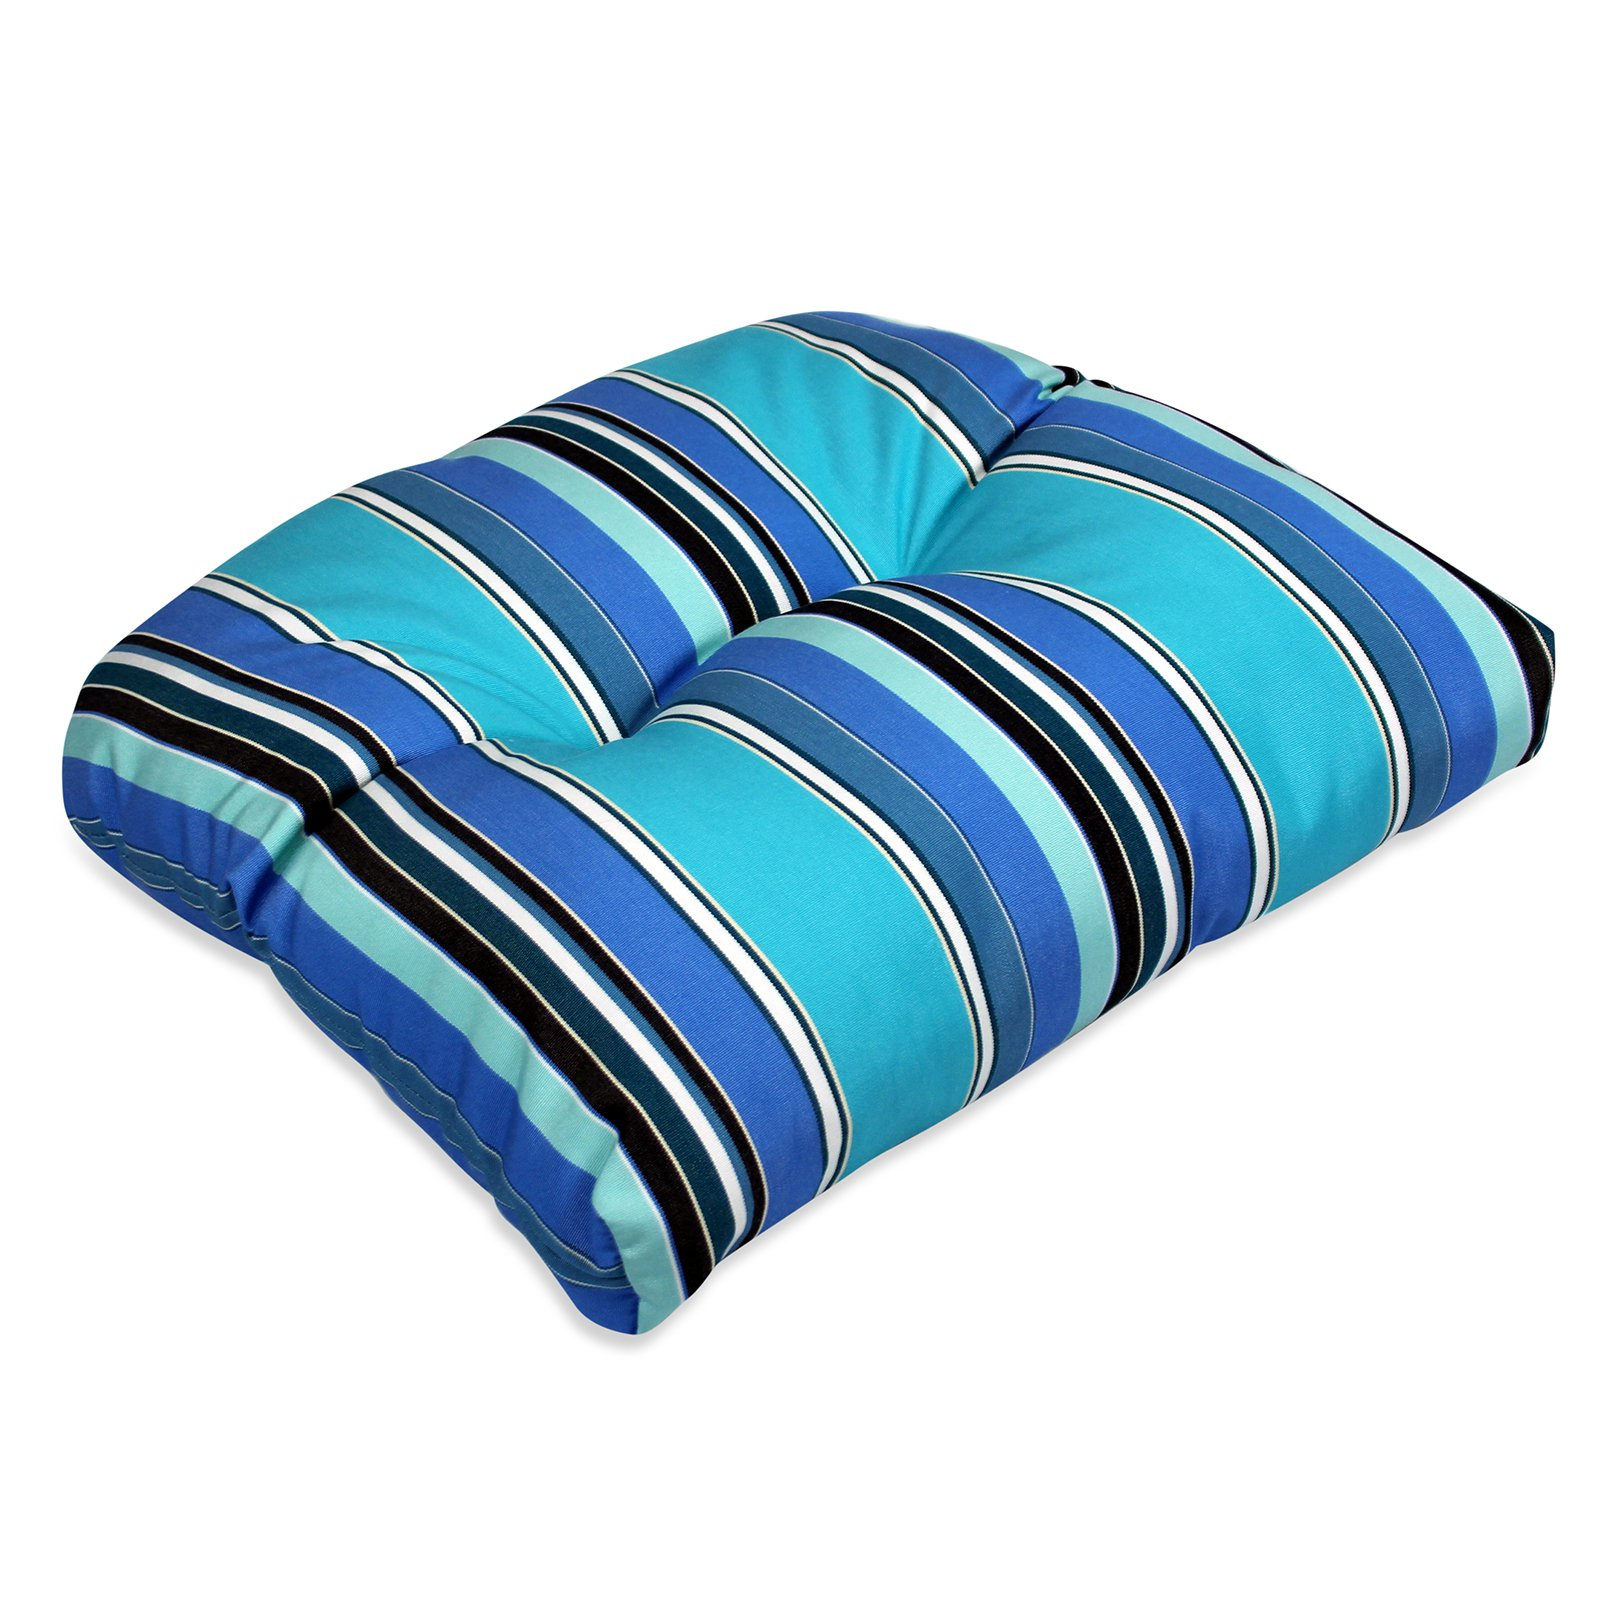 Comfort Classics Sunbrella Chaise Lounge Cushion